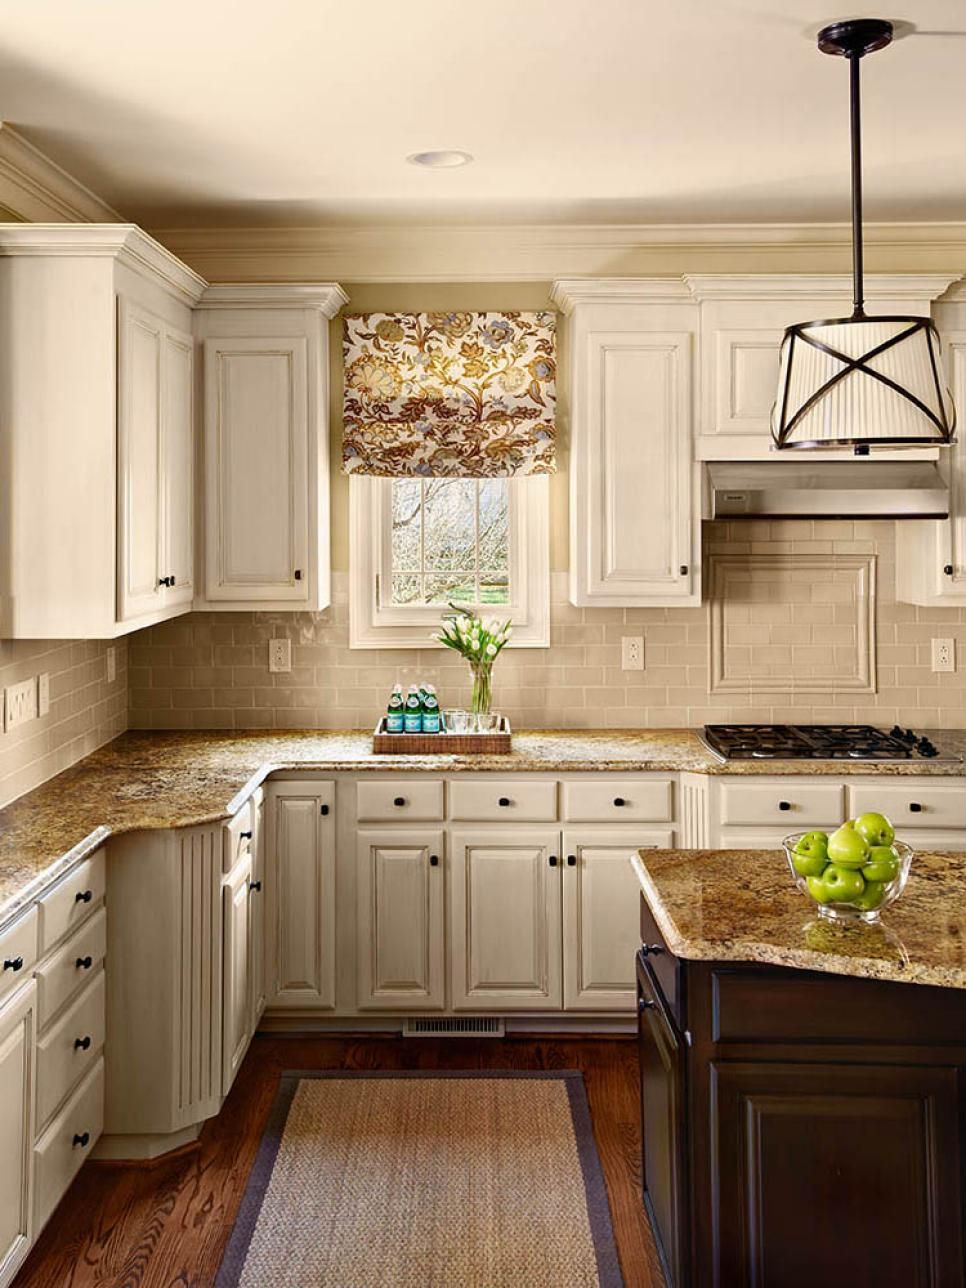 Browse pictures of gorgeous kitchens for cabinet